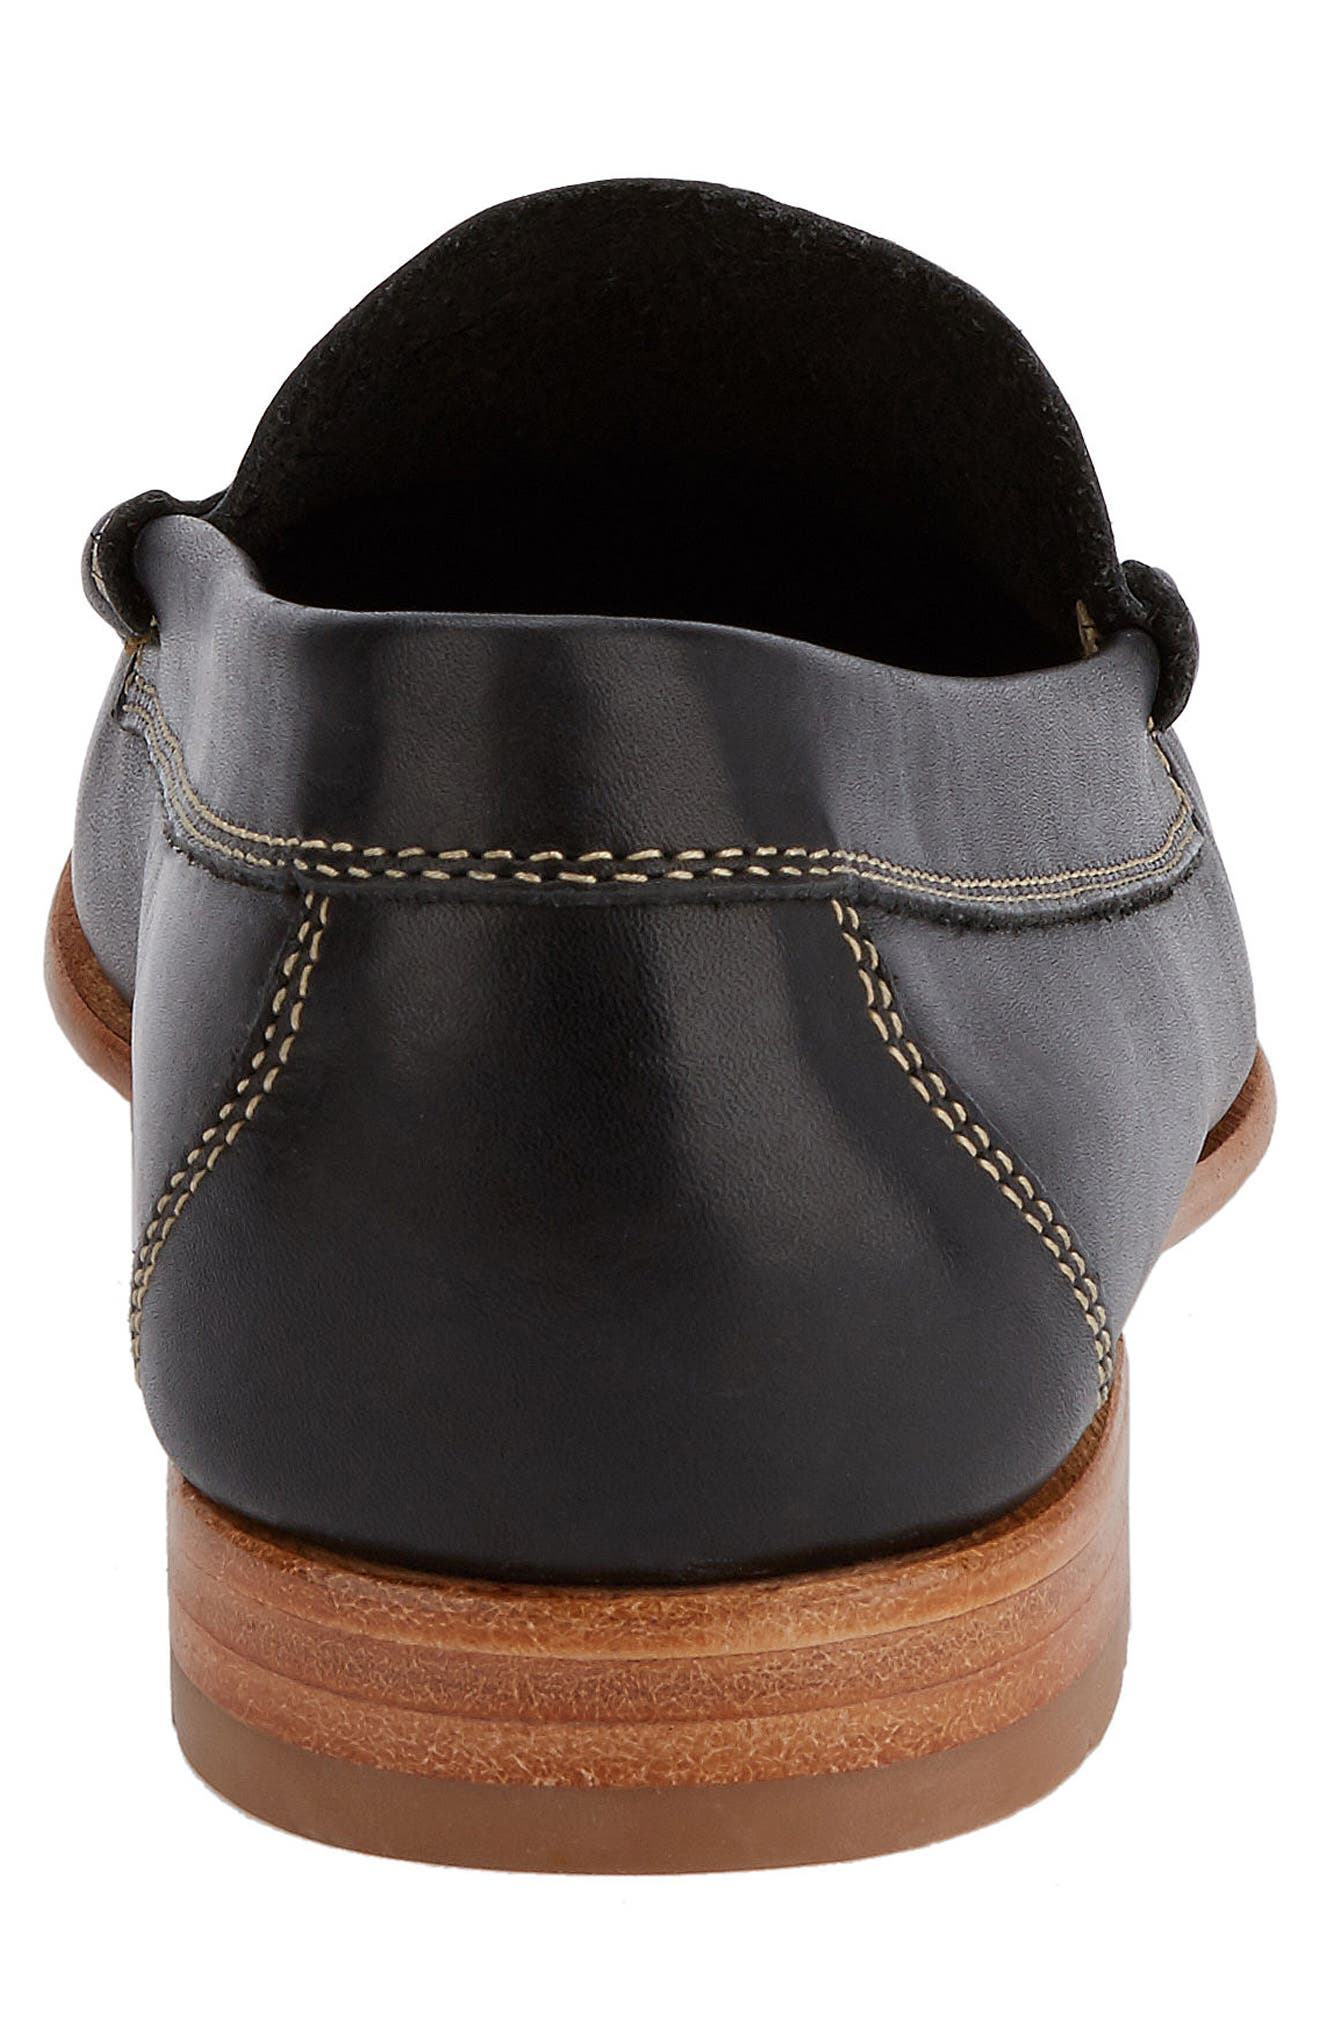 Weejuns Lambert Penny Loafer,                             Alternate thumbnail 6, color,                             001